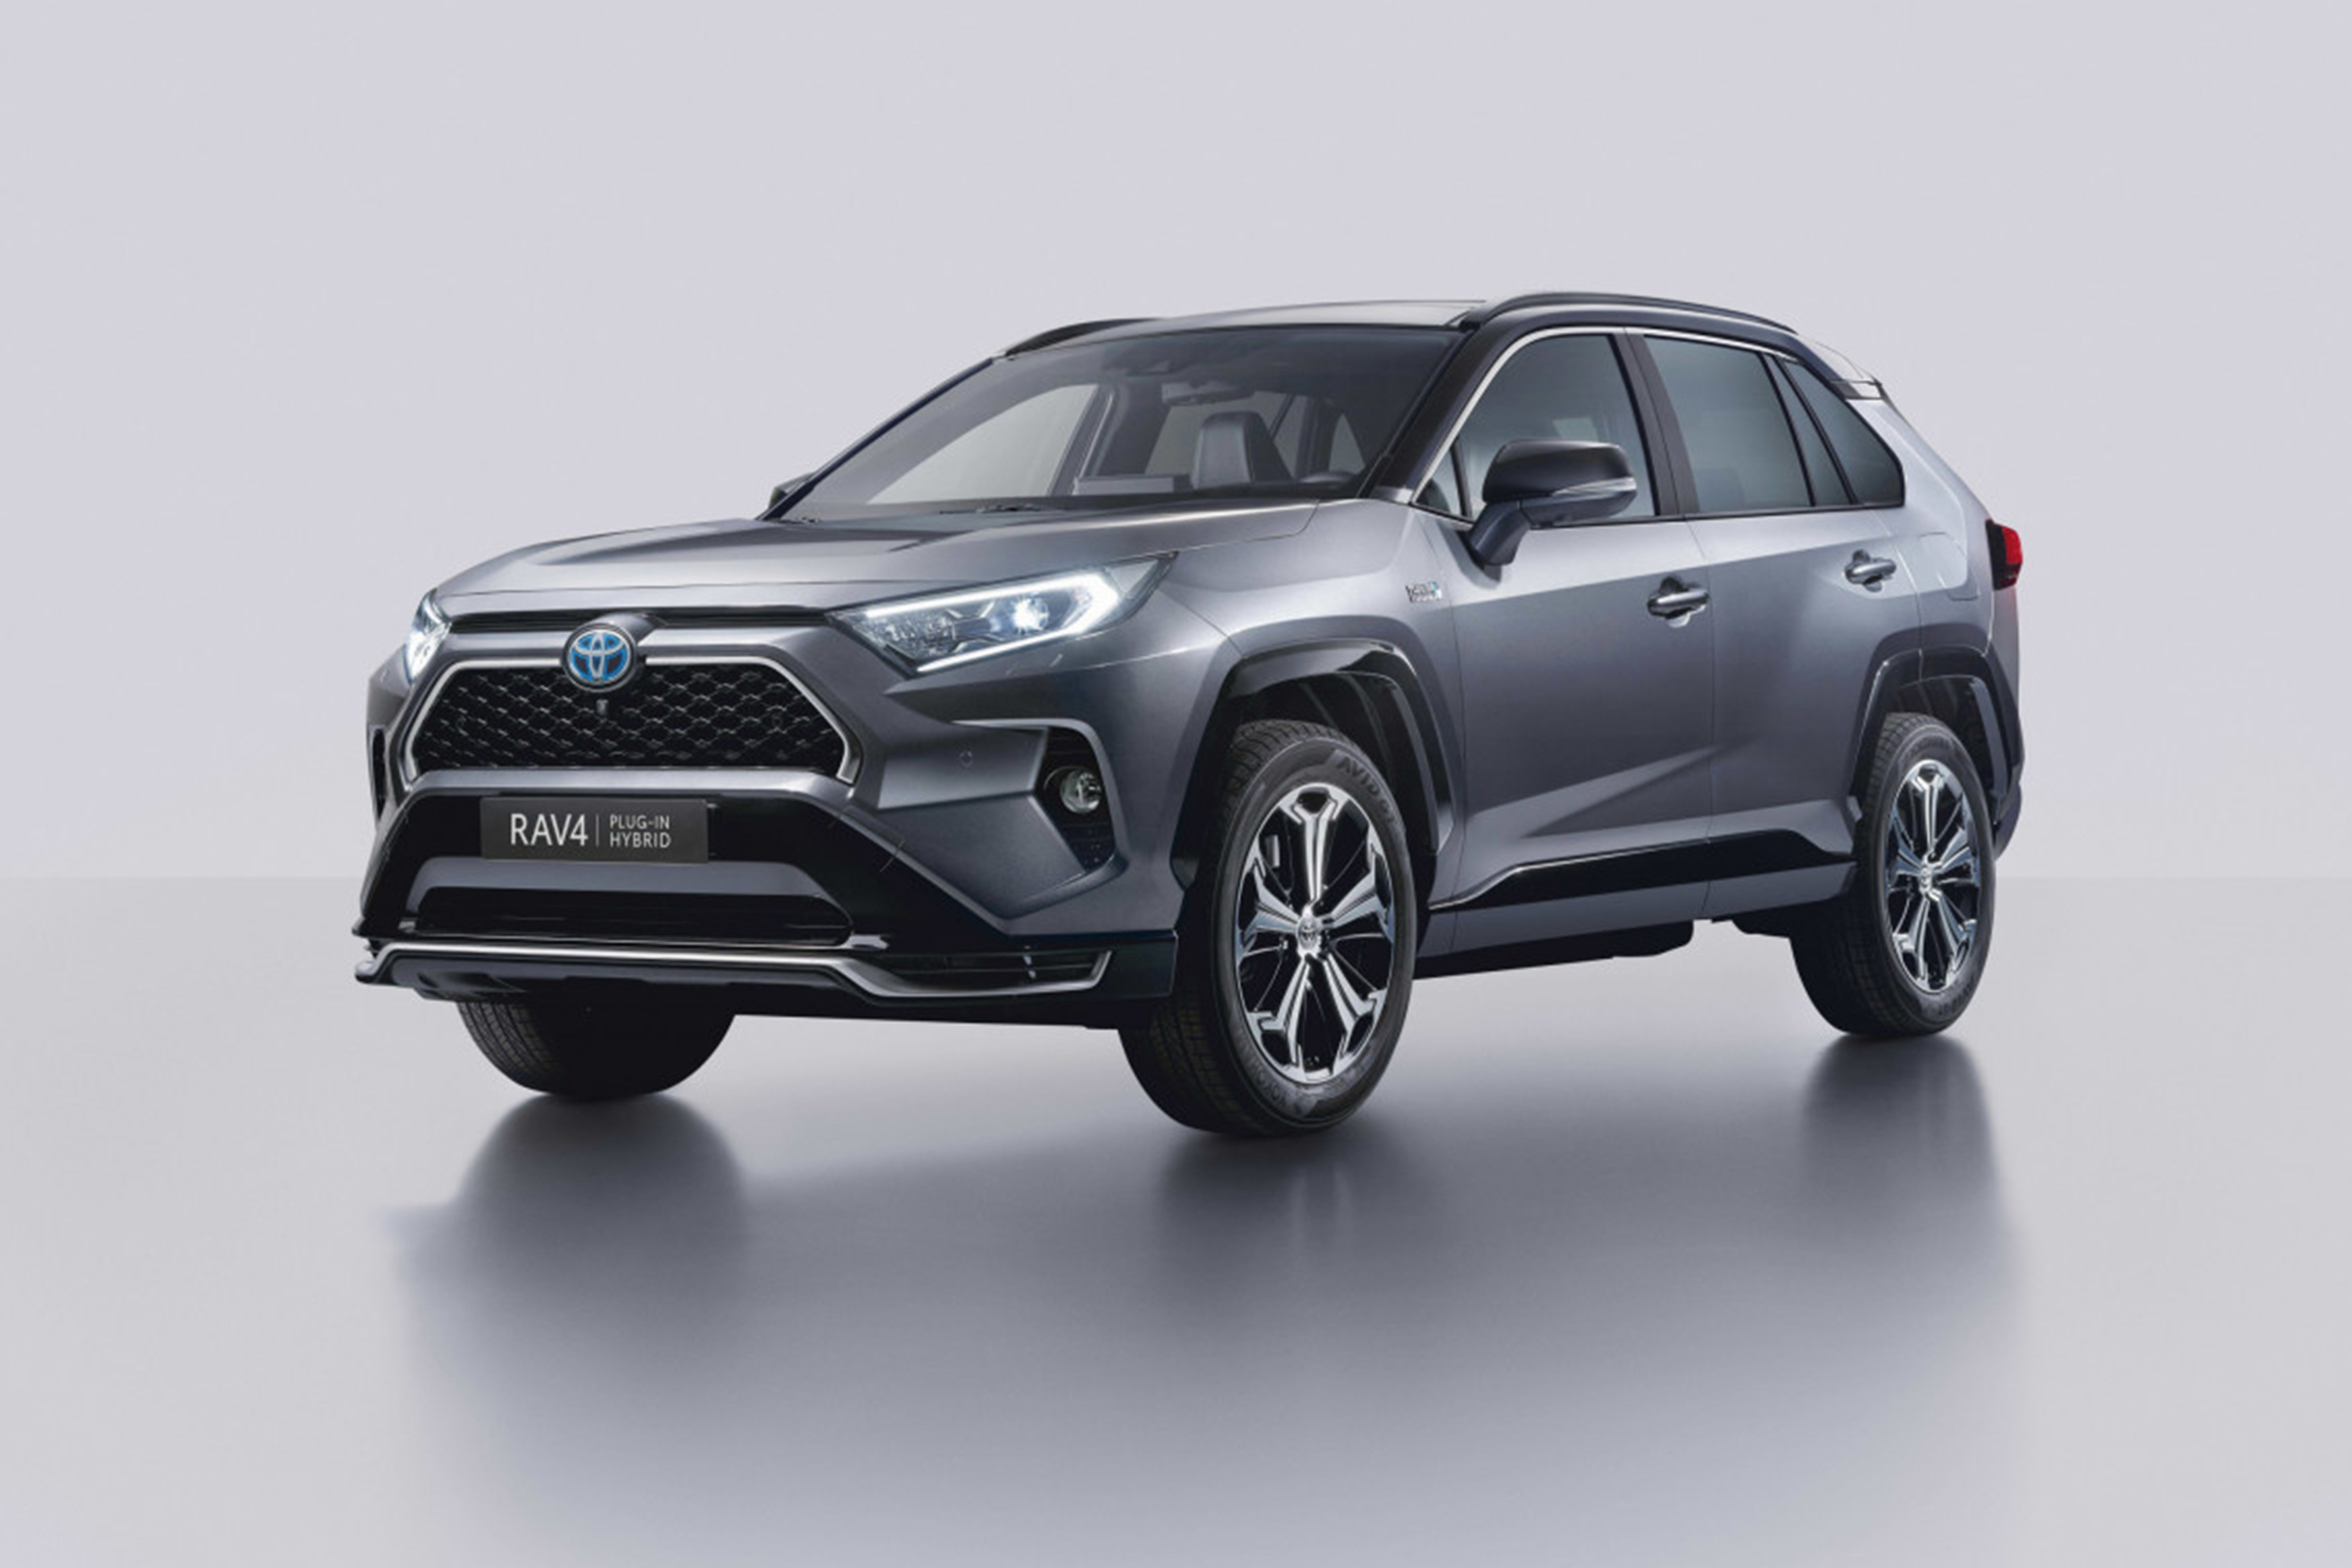 302bhp toyota rav4 plug in hybrid to launch in spring 2021 carbuyer 302bhp toyota rav4 plug in hybrid to